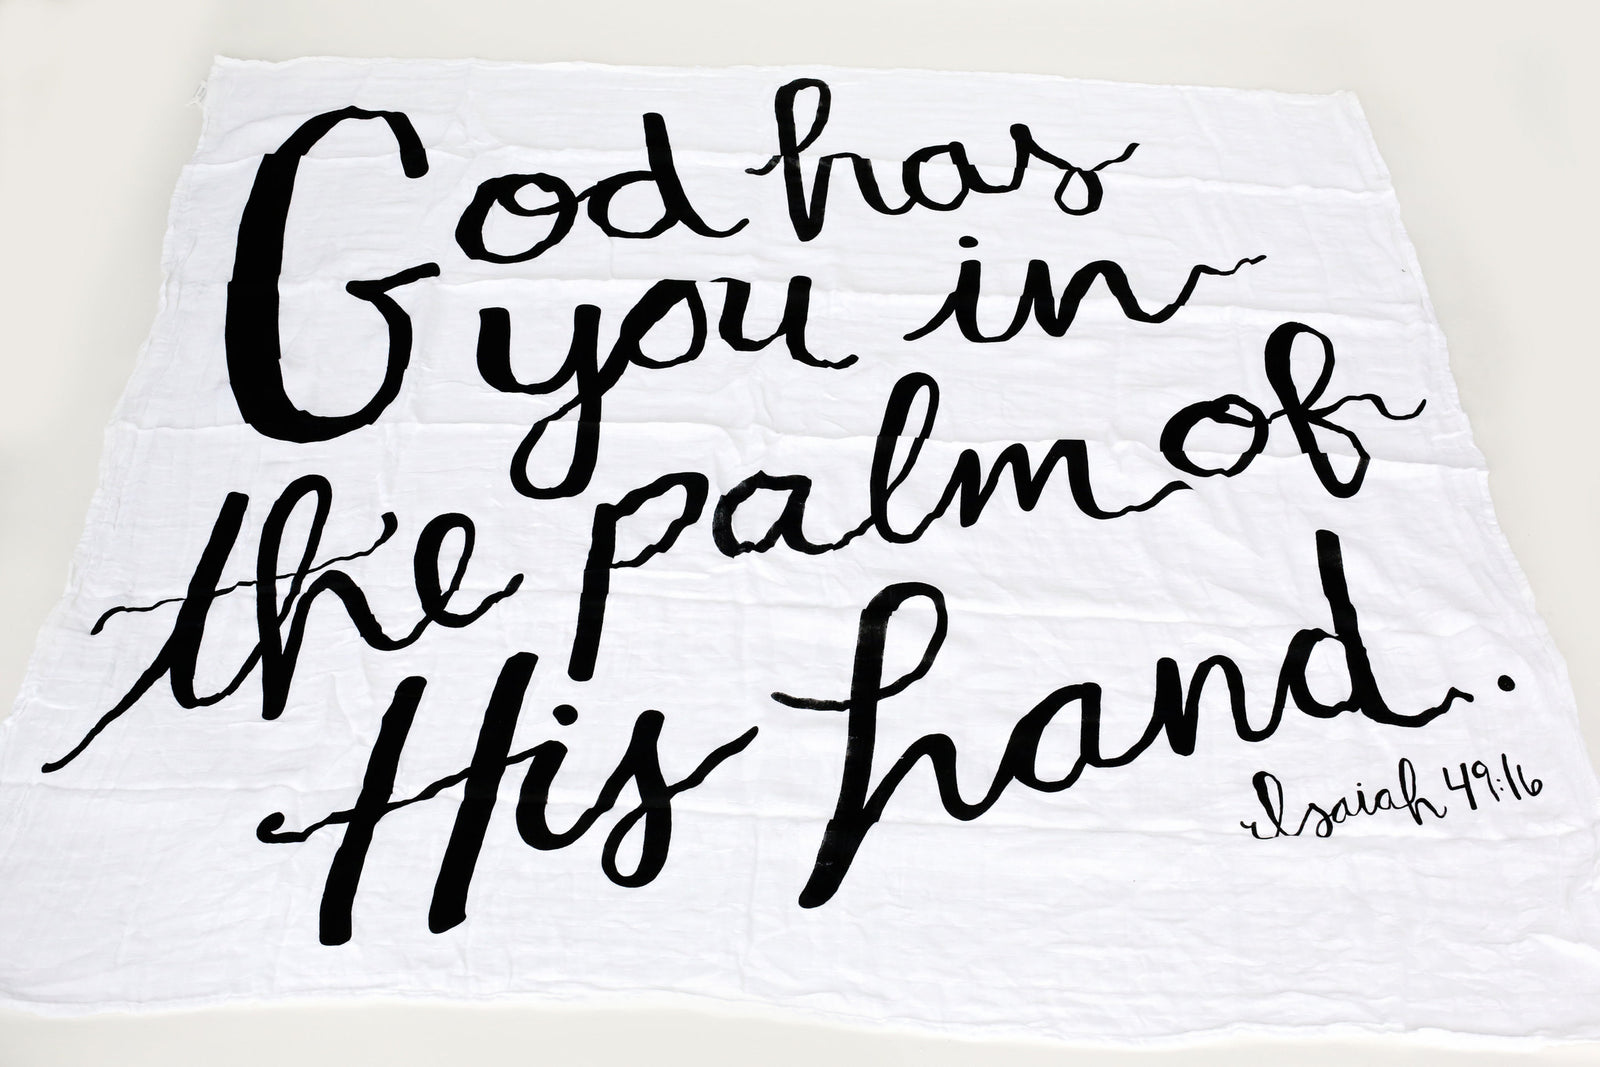 Organic Cotton Muslin Swaddle Blanket - GOD HAS YOU IN THE PALM OF HIS HAND. ISAIAH 49:16